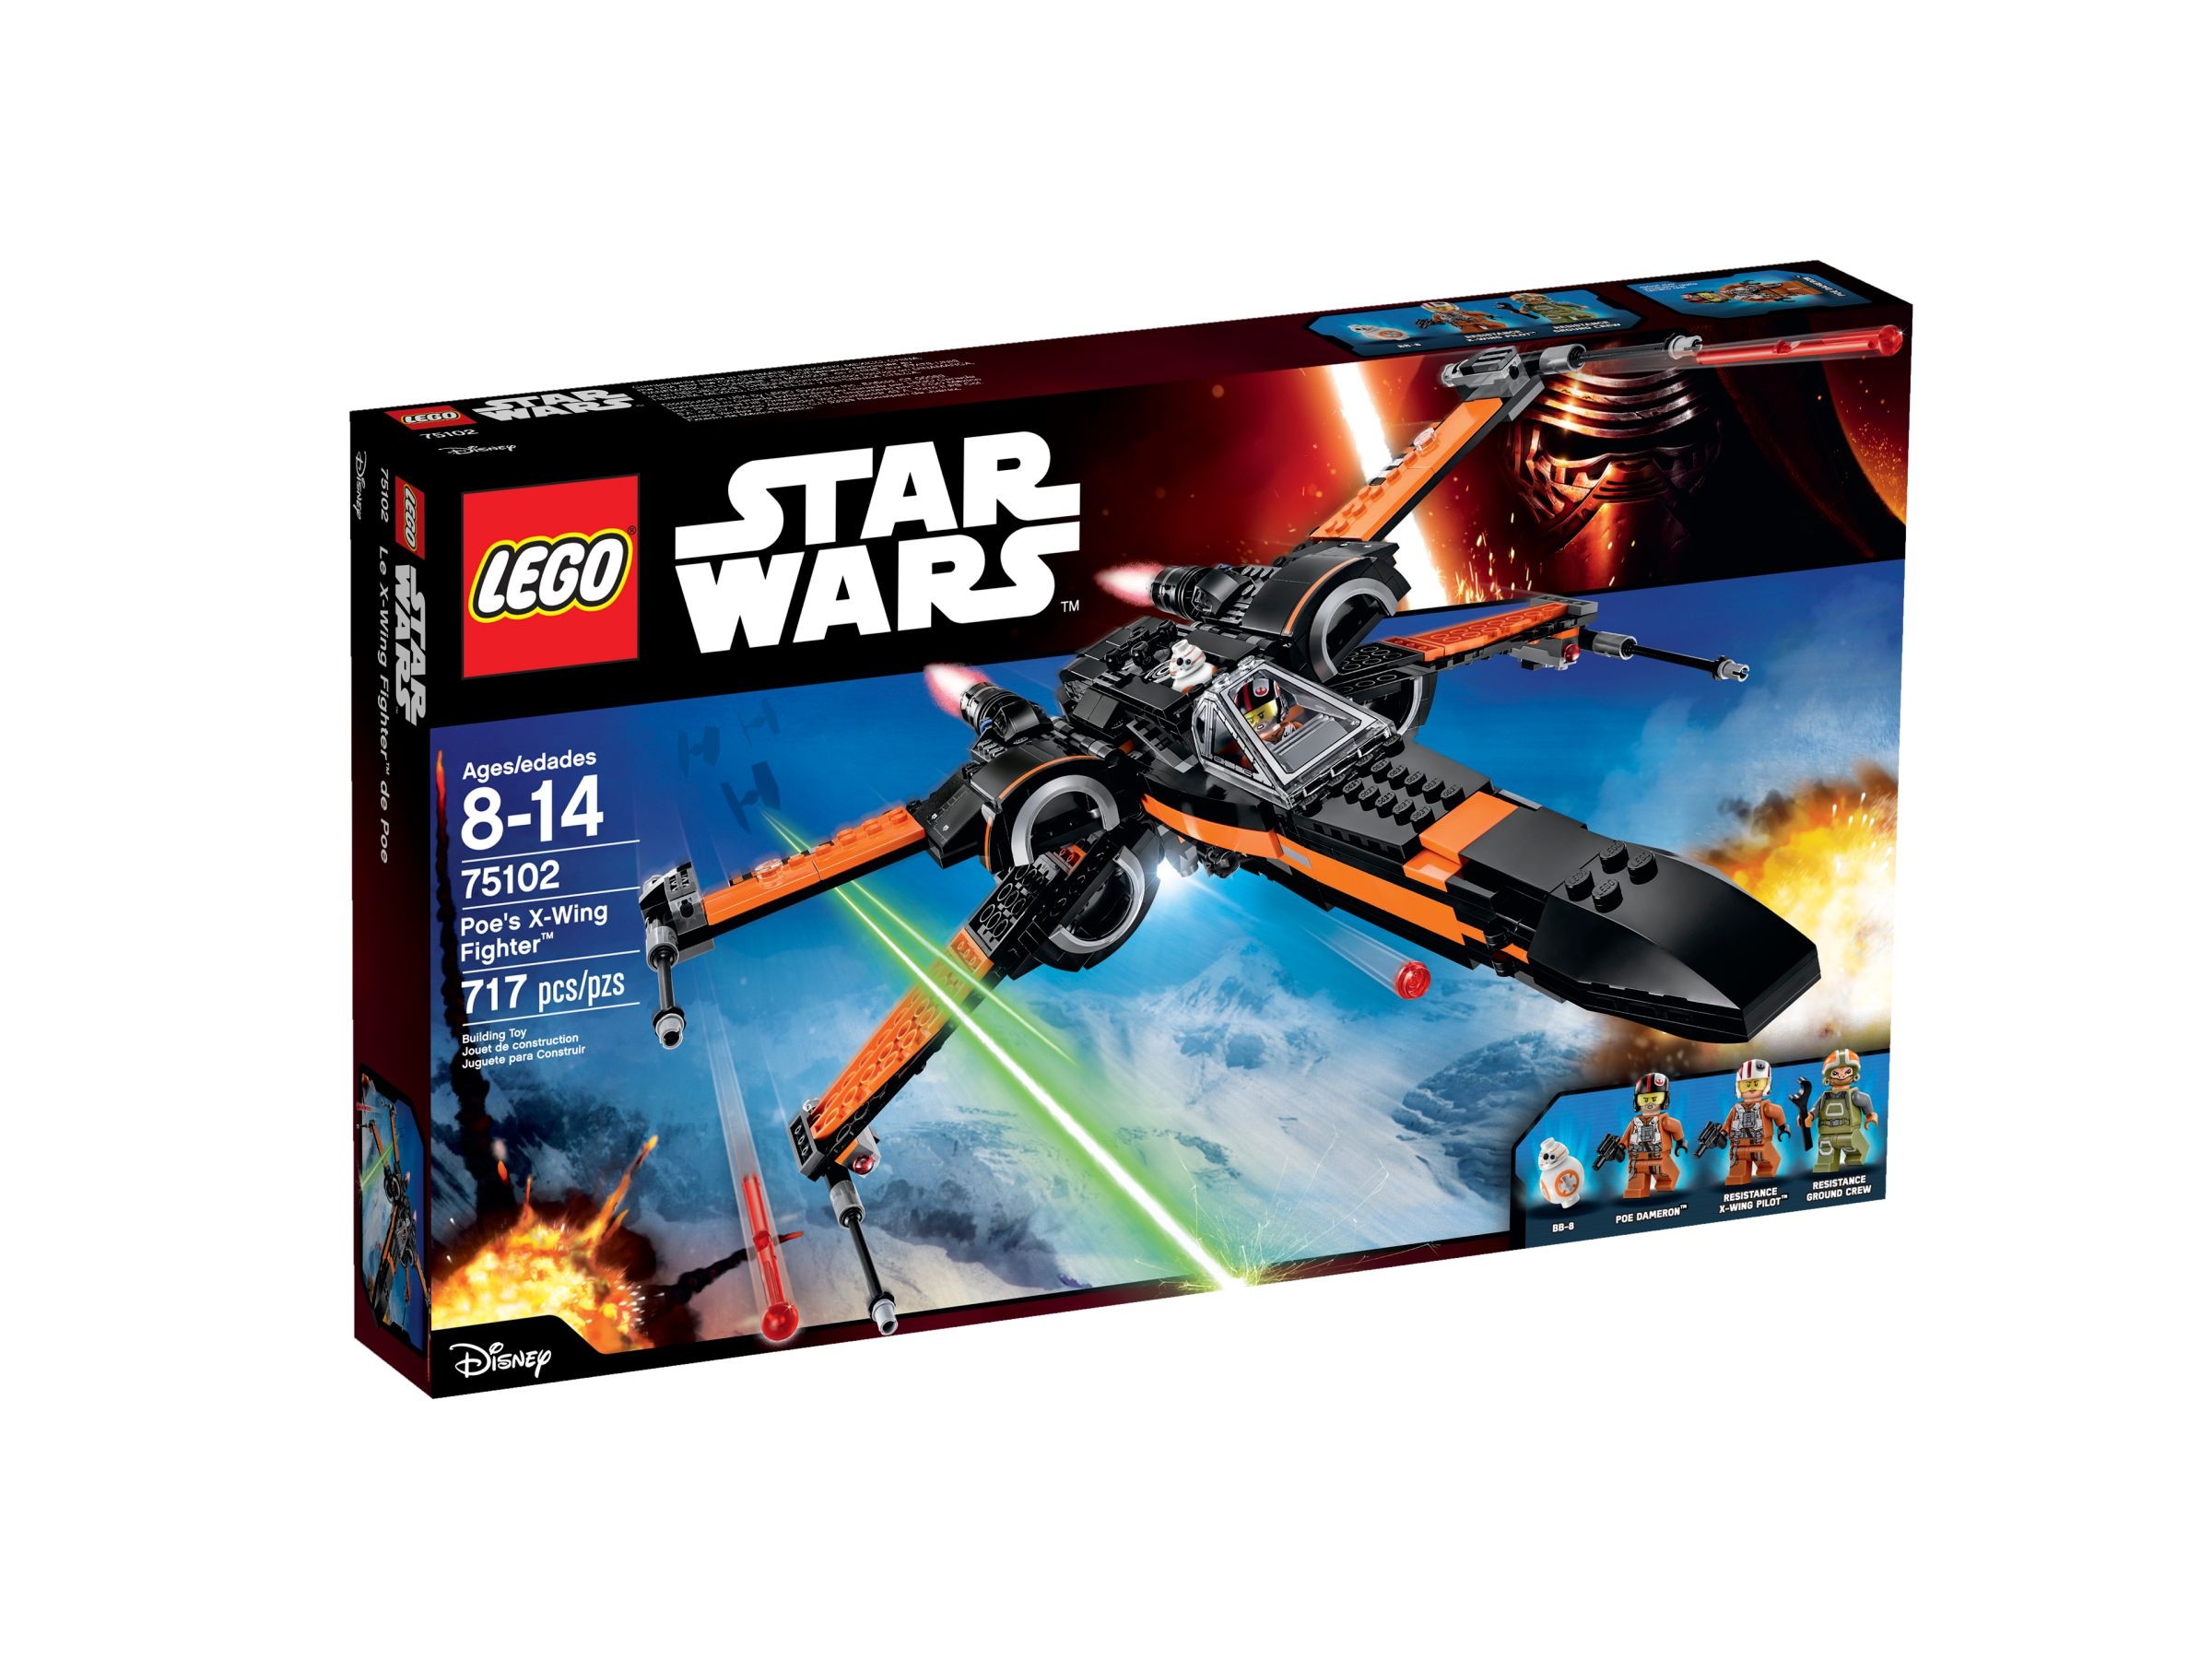 LEGO Star Wars 75102 Poe's X-Wing Fighter™ LEGO_75102_alt1.jpg